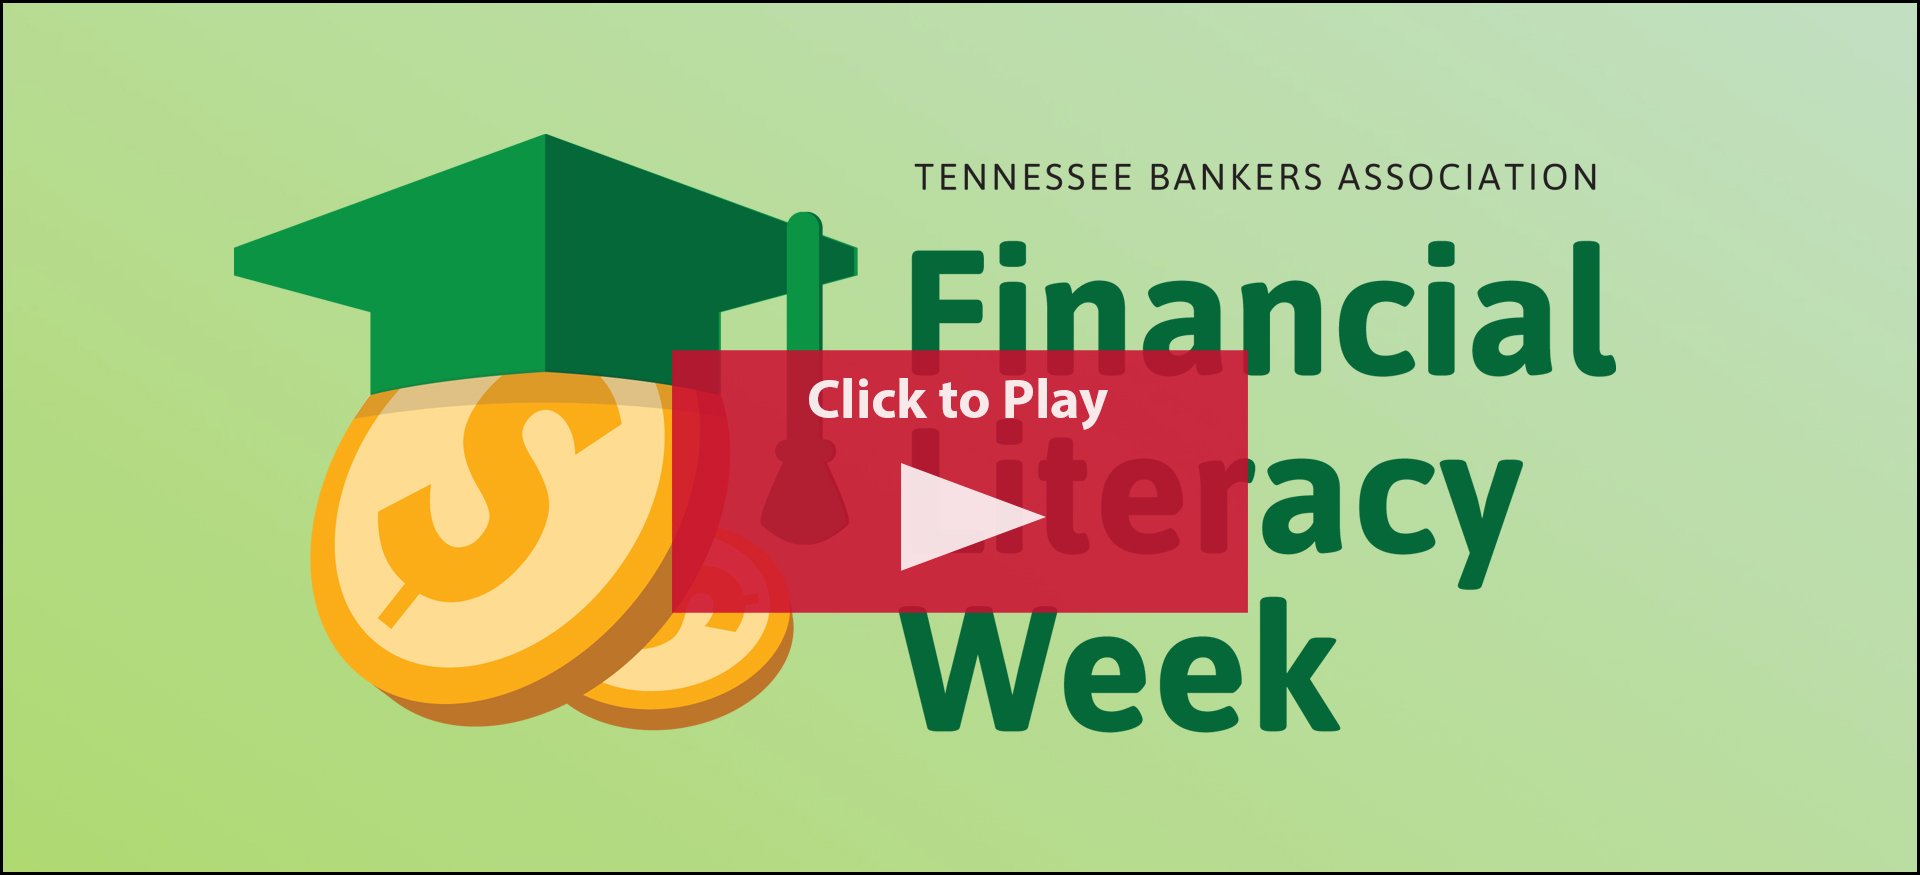 Tennessee Financial Literacy Week | Tennessee Bankers Association